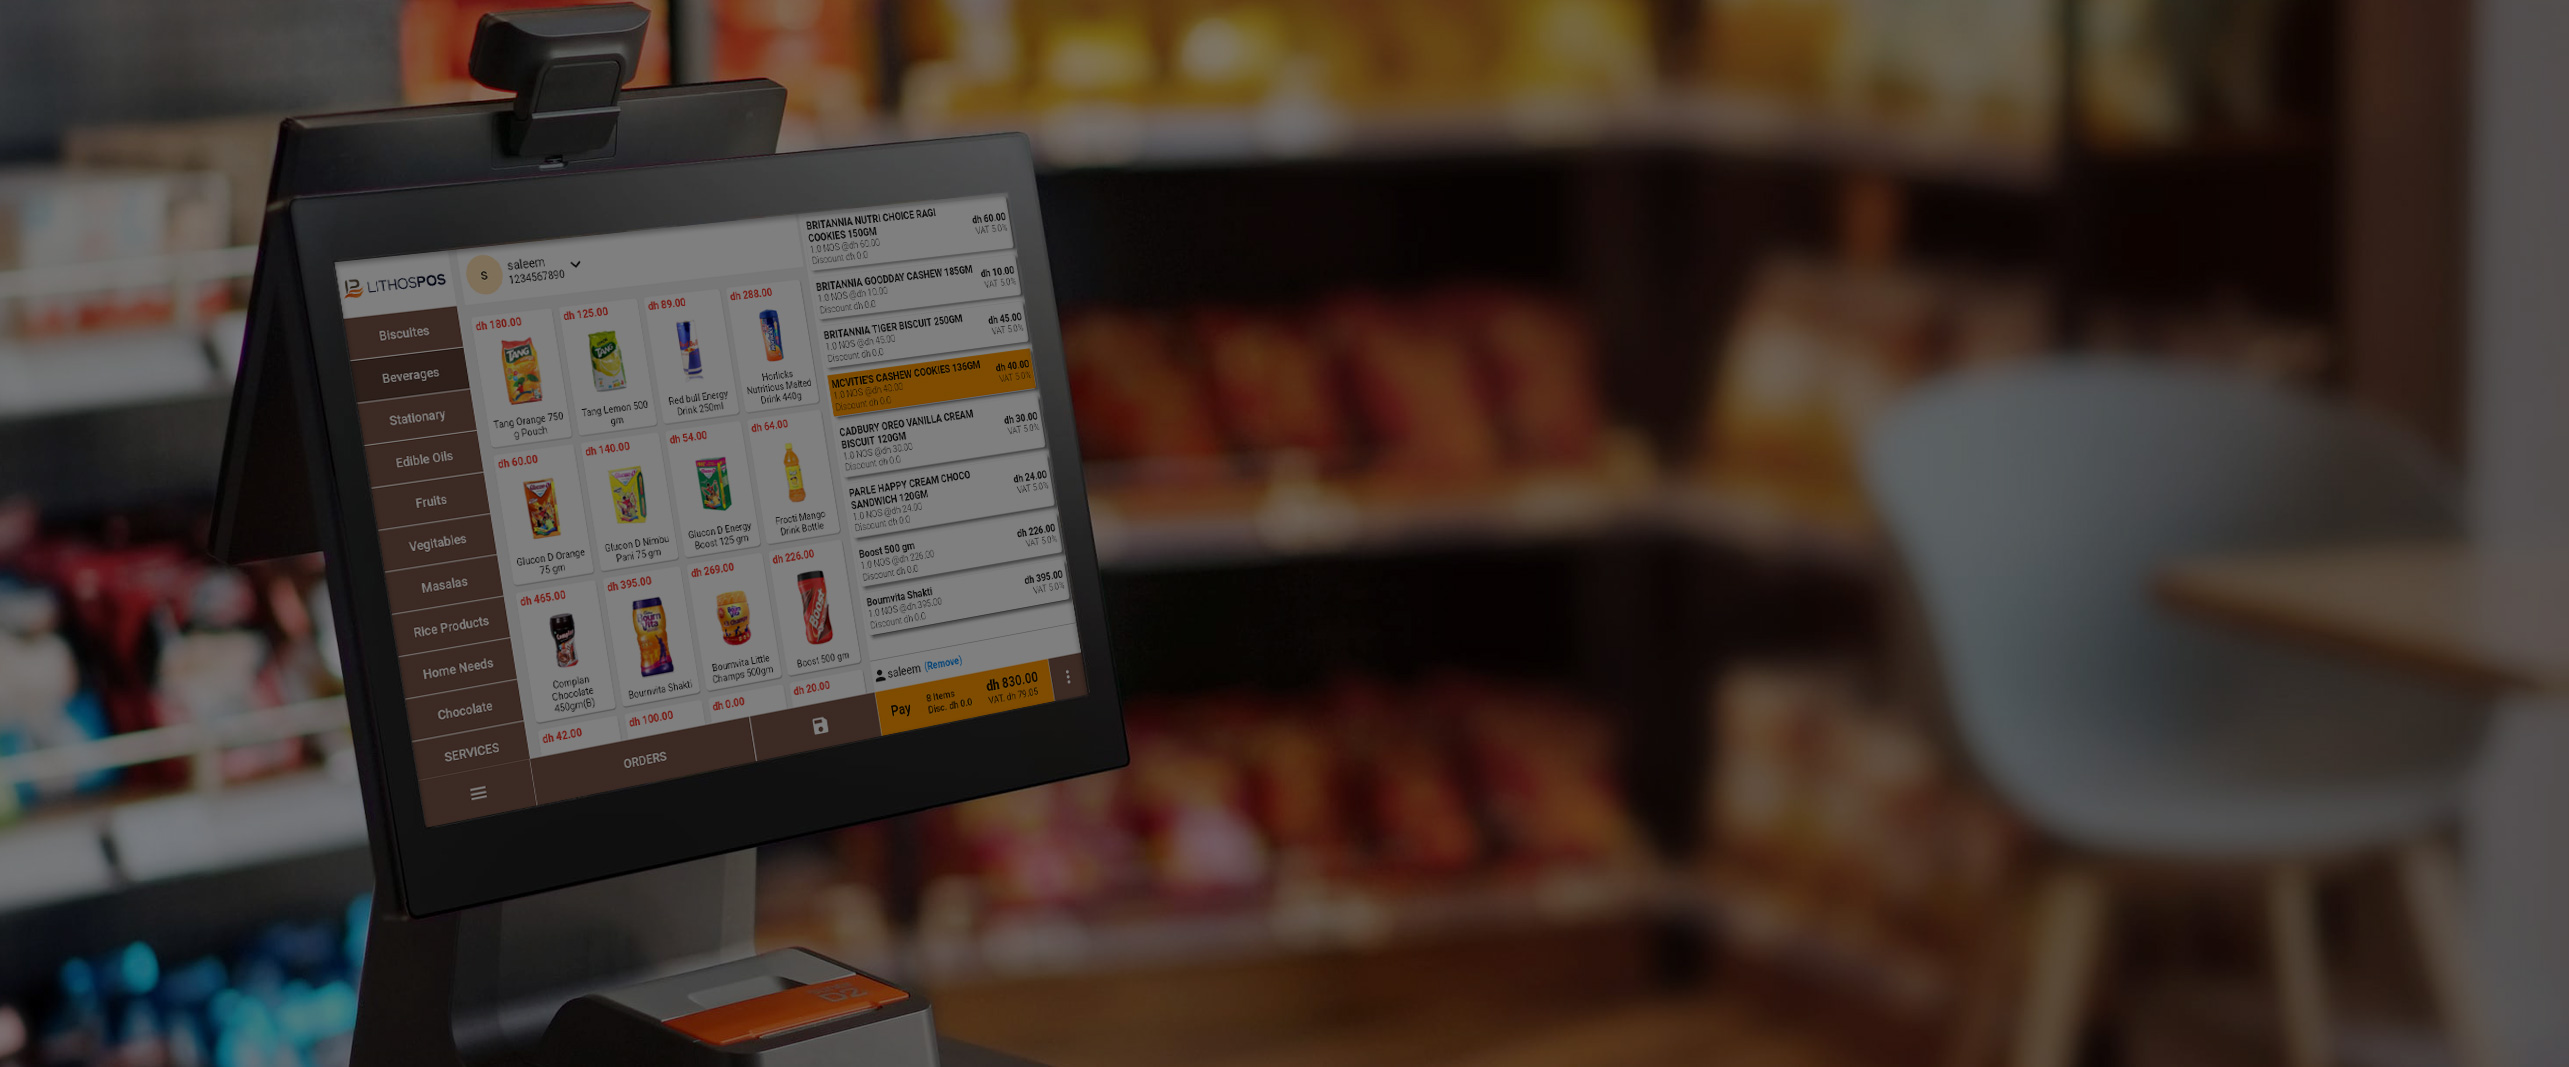 download pos software